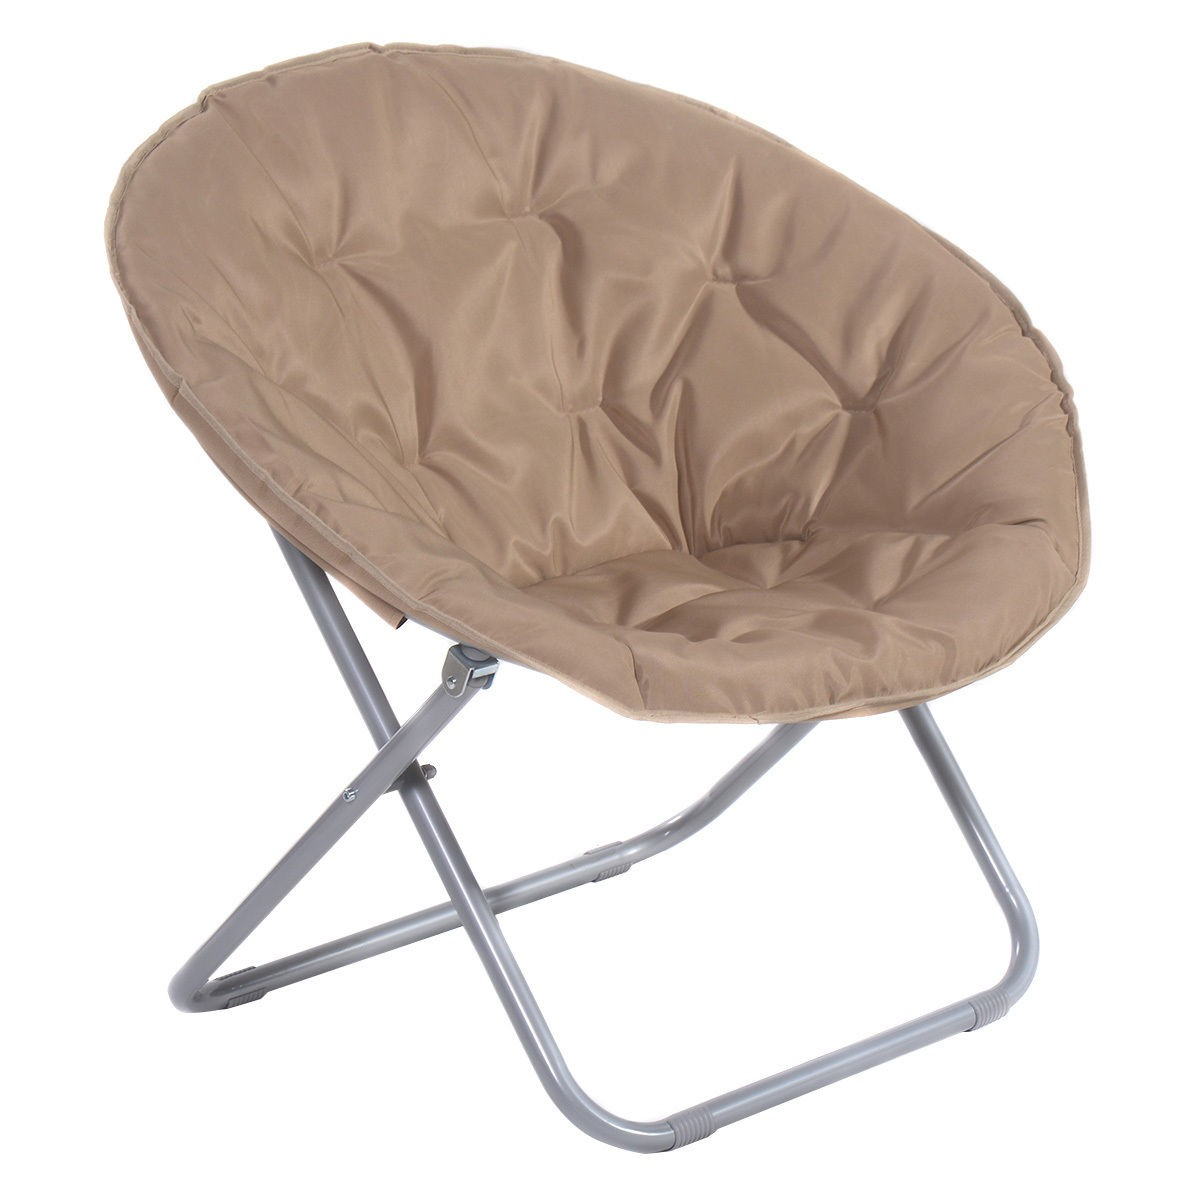 Large folding saucer moon chair den tv living room round for Big round chair